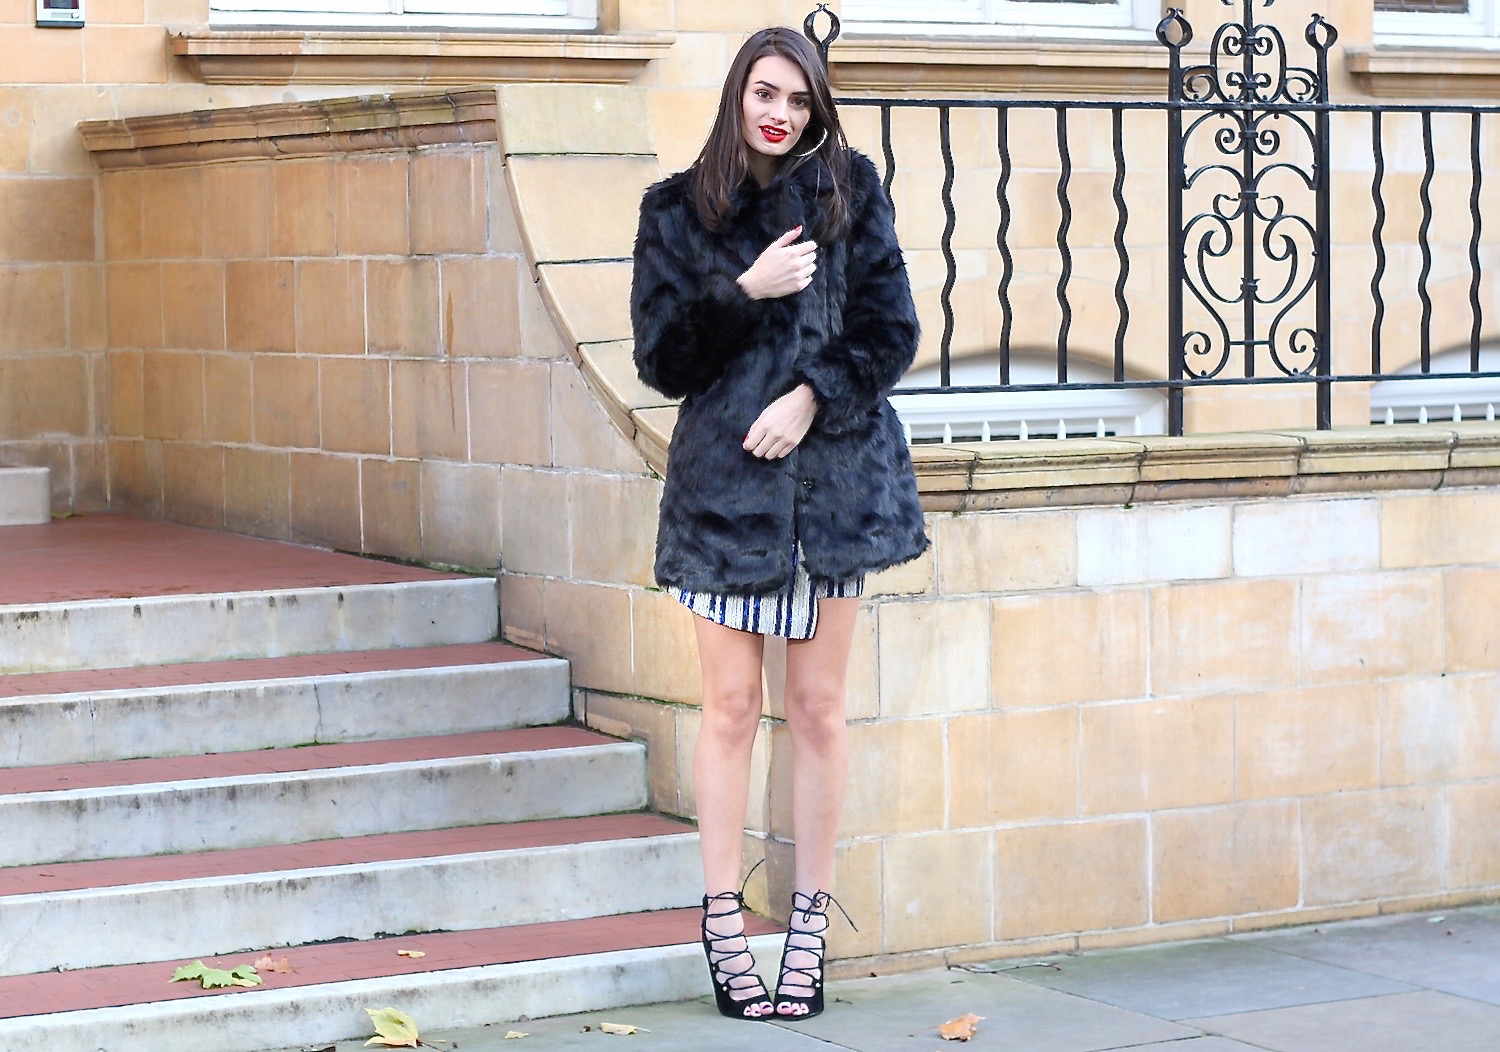 peexo fashion blogger wearing faux fur coat and sequins